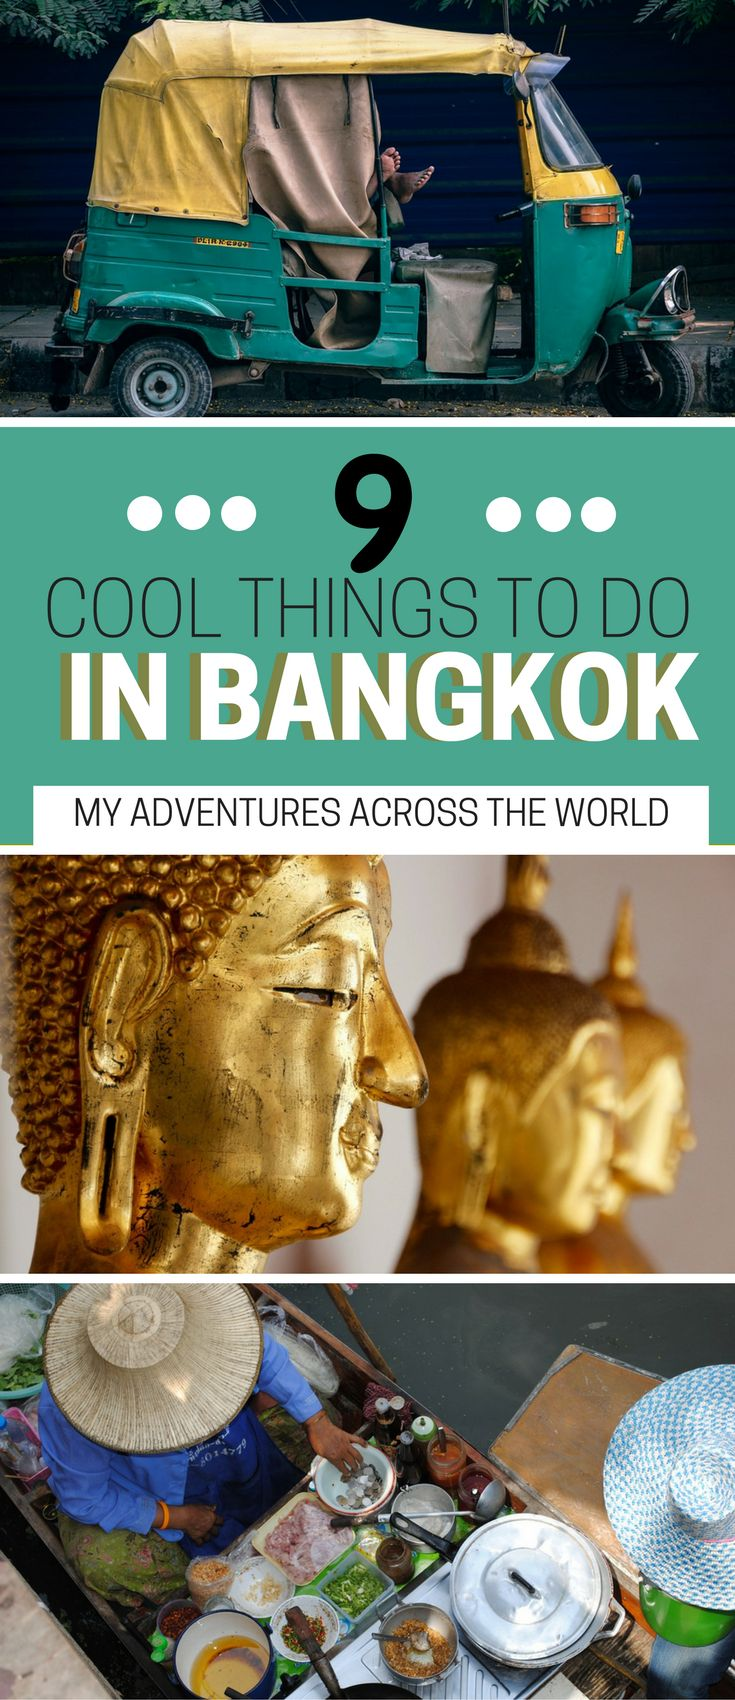 Heading to Bangkok, Thailand soon? Check out these 9 cool things to do in Bangkok. A guide to the best things to do in Bangkok + a Bangkok guide with tons of Bangkok travel tips - via @clautavani